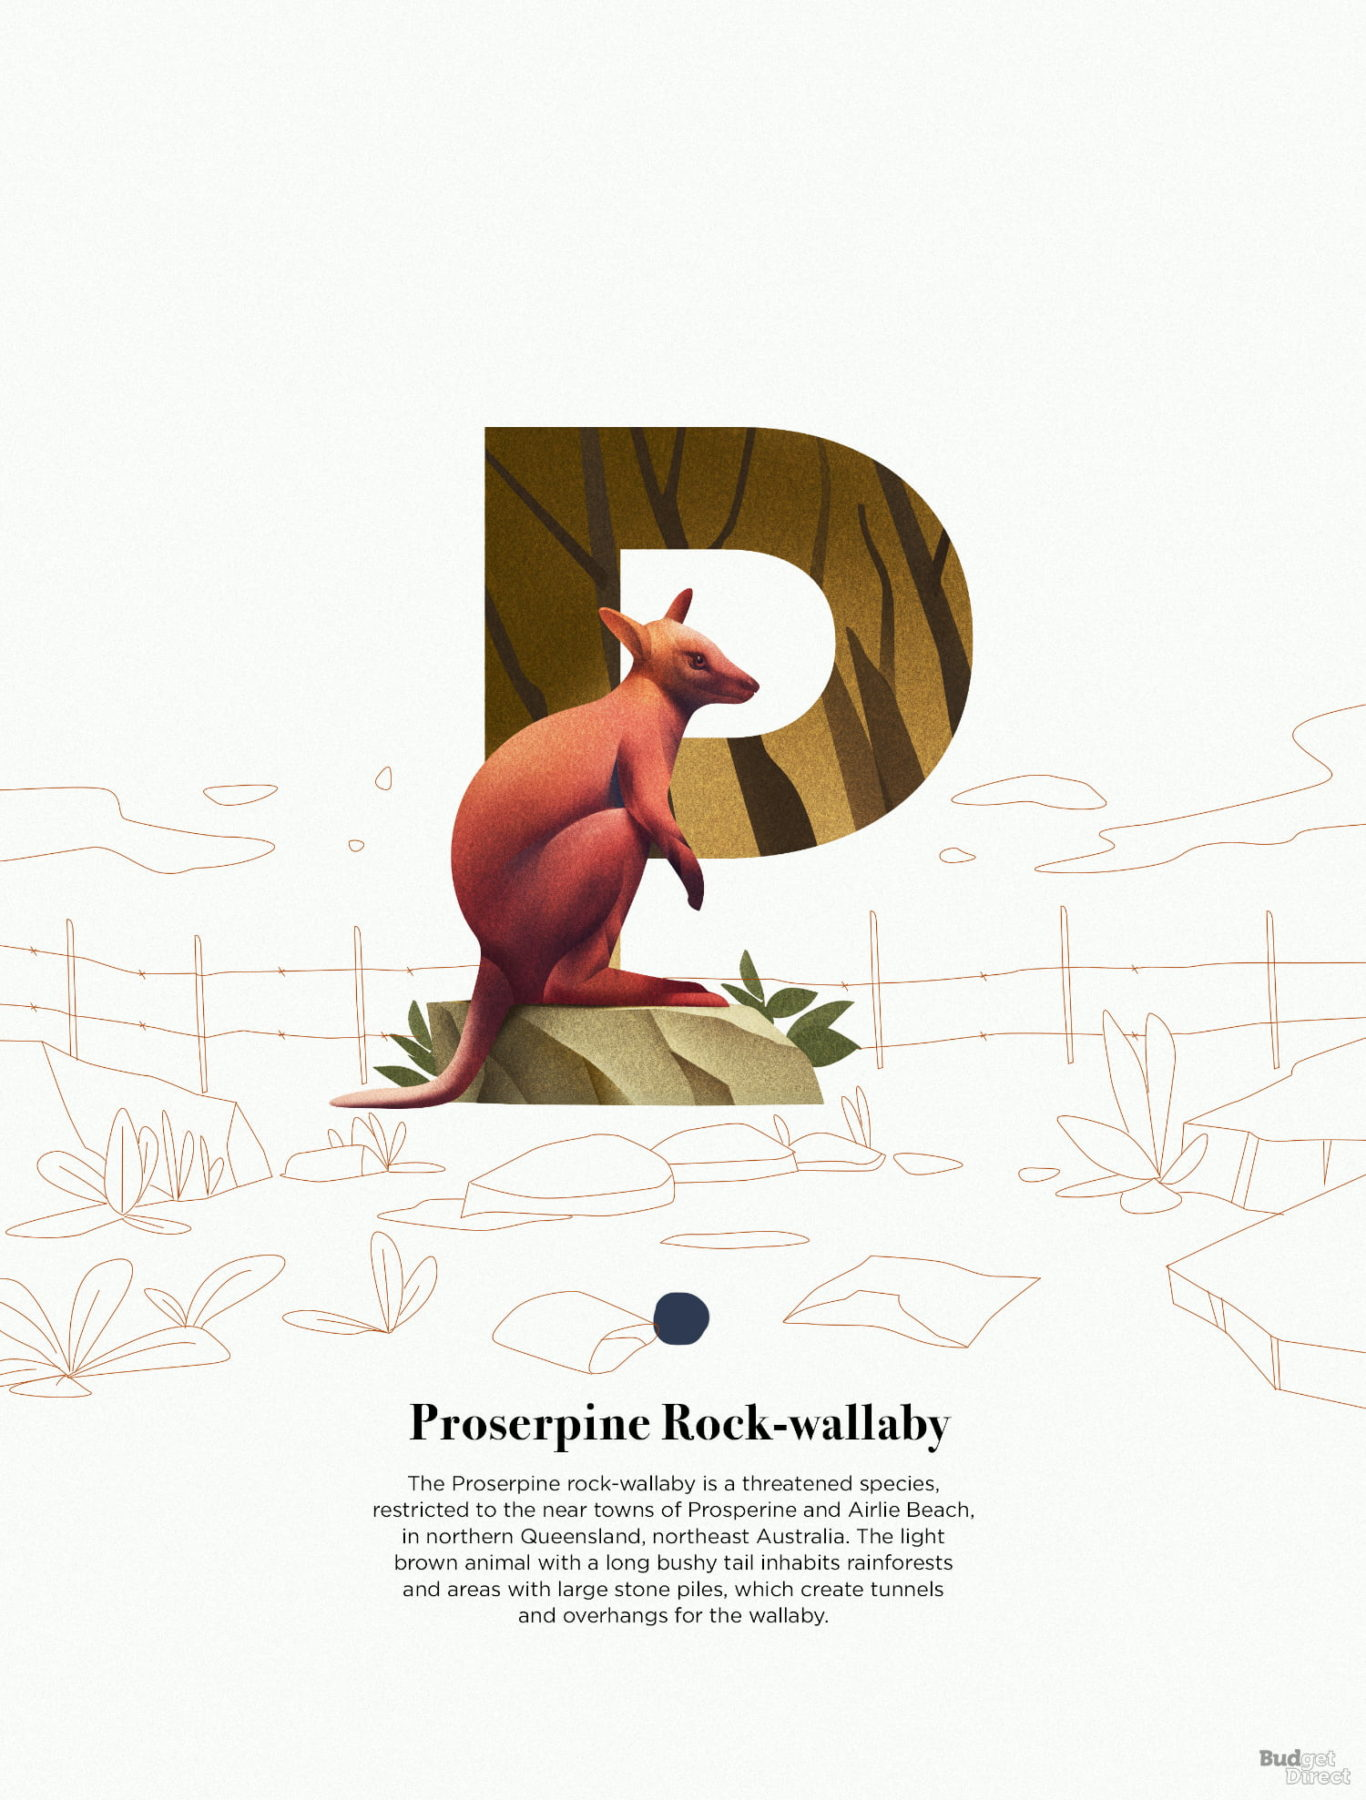 P is for Proserpine Rock wallaby